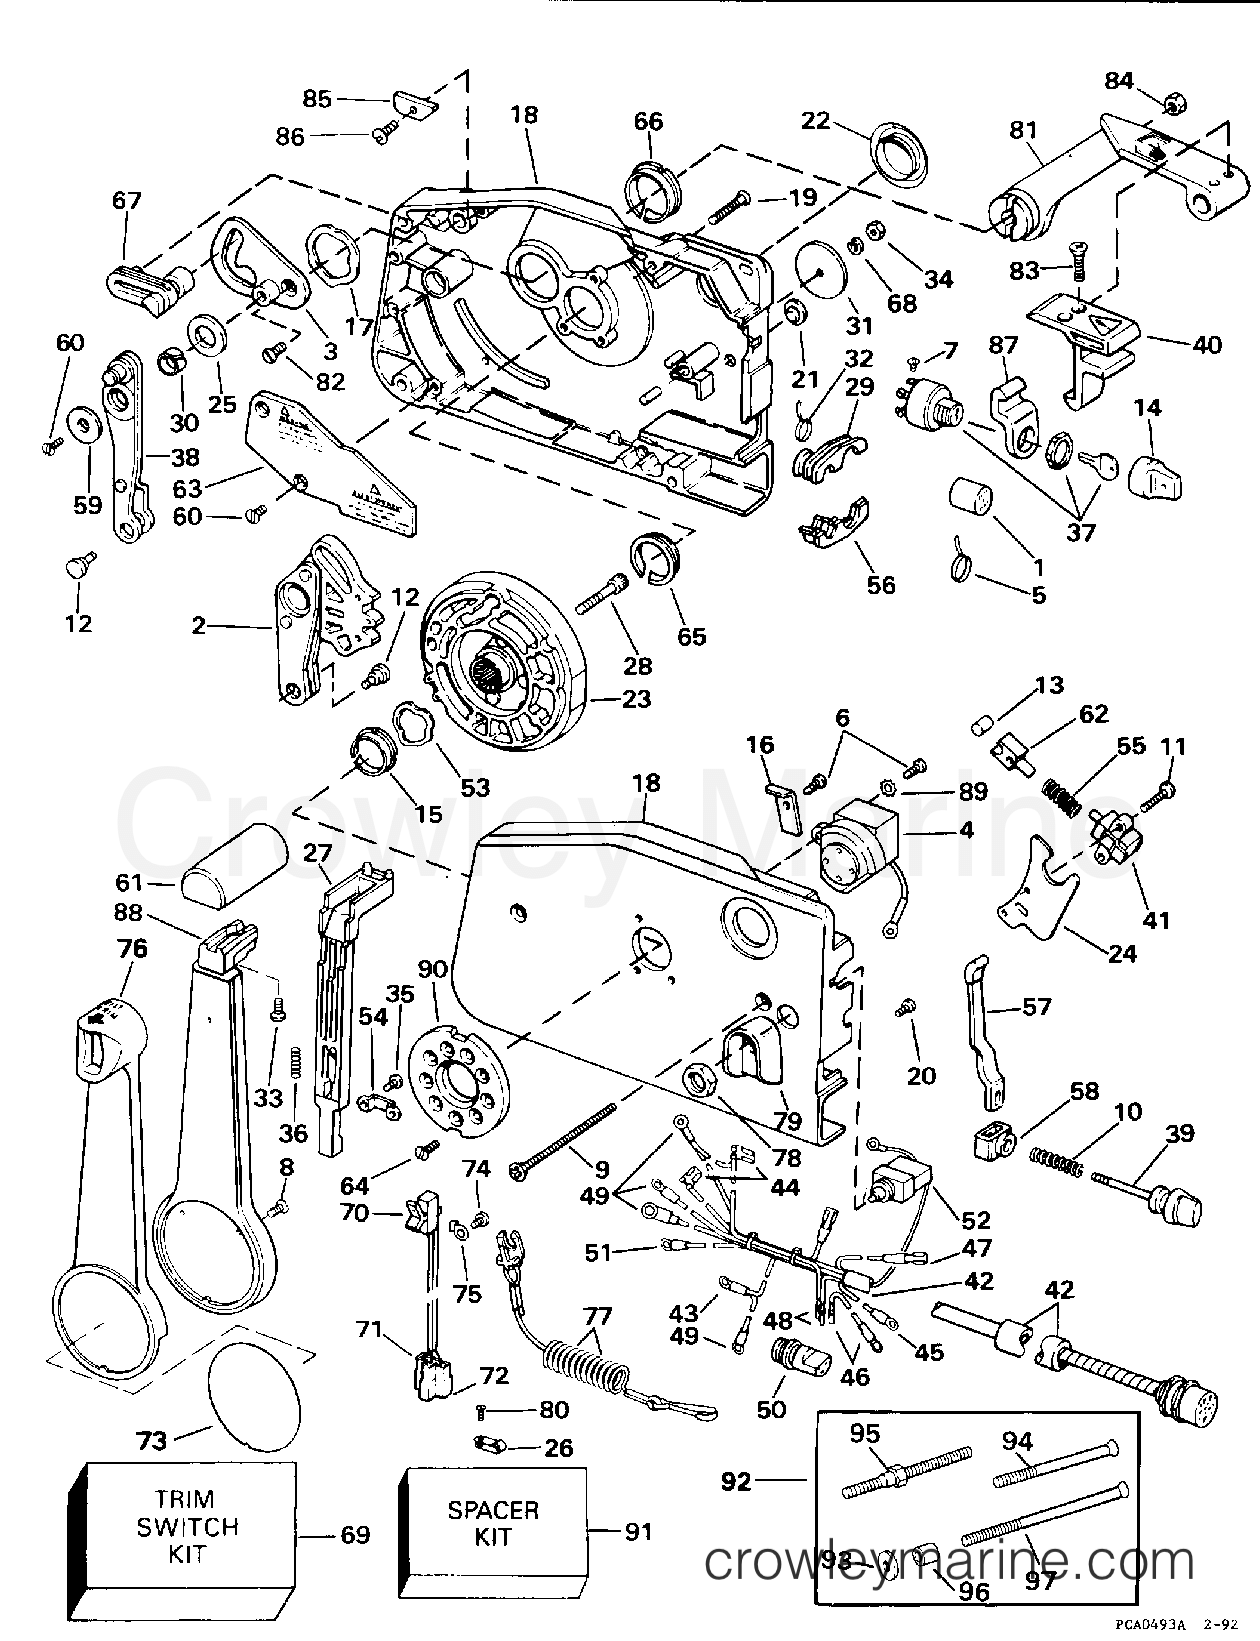 Omc Shifter Diagram Content Resource Of Wiring 1978 Remote Control Parts 32 Cobra Shift Cable